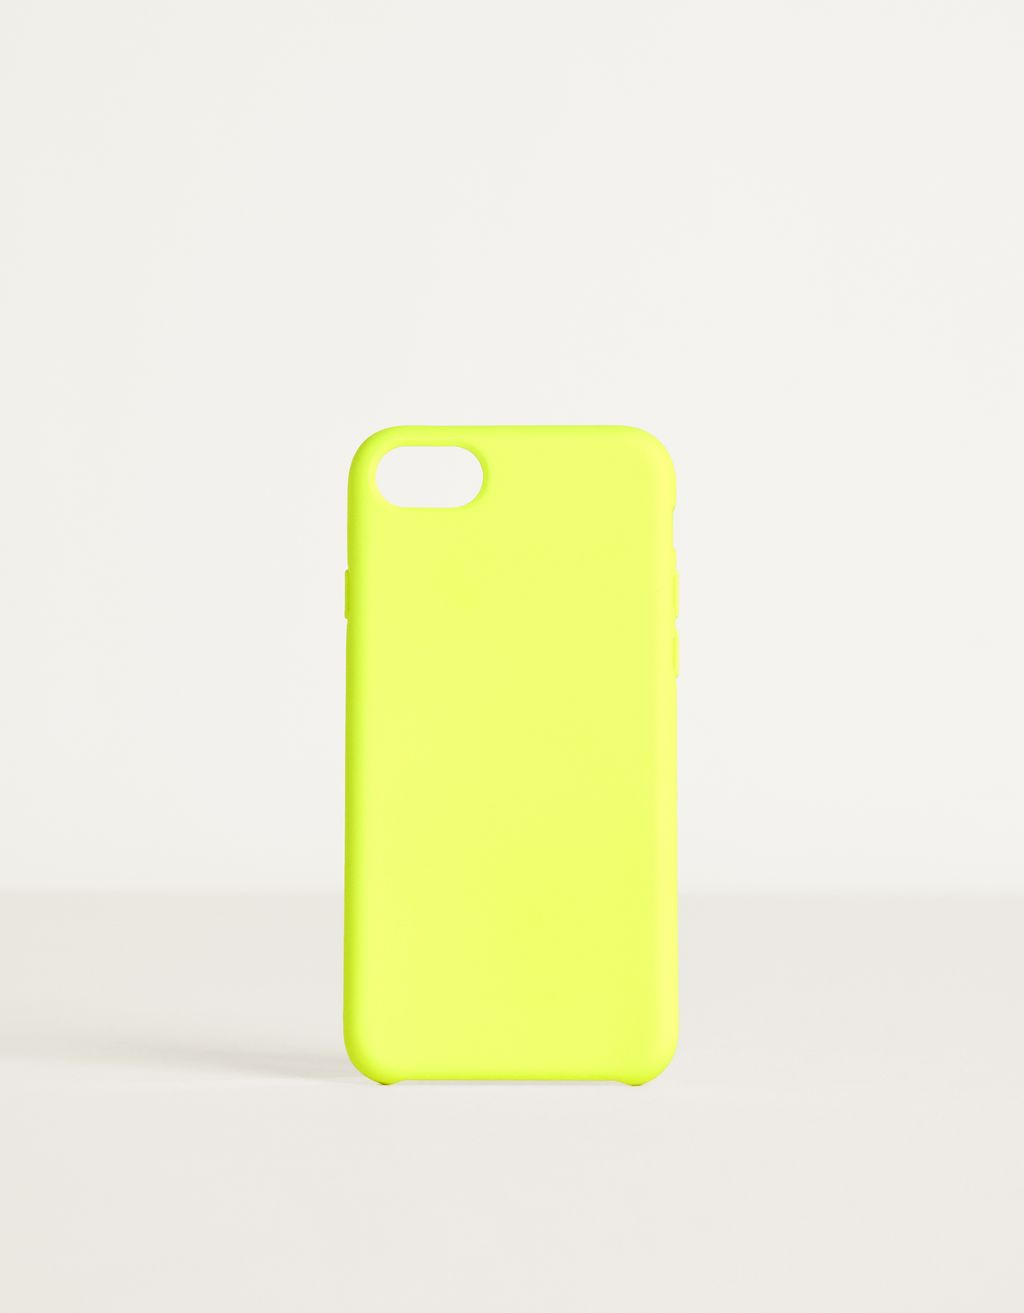 Monochrome iPhone 6 / 7 / 8 case